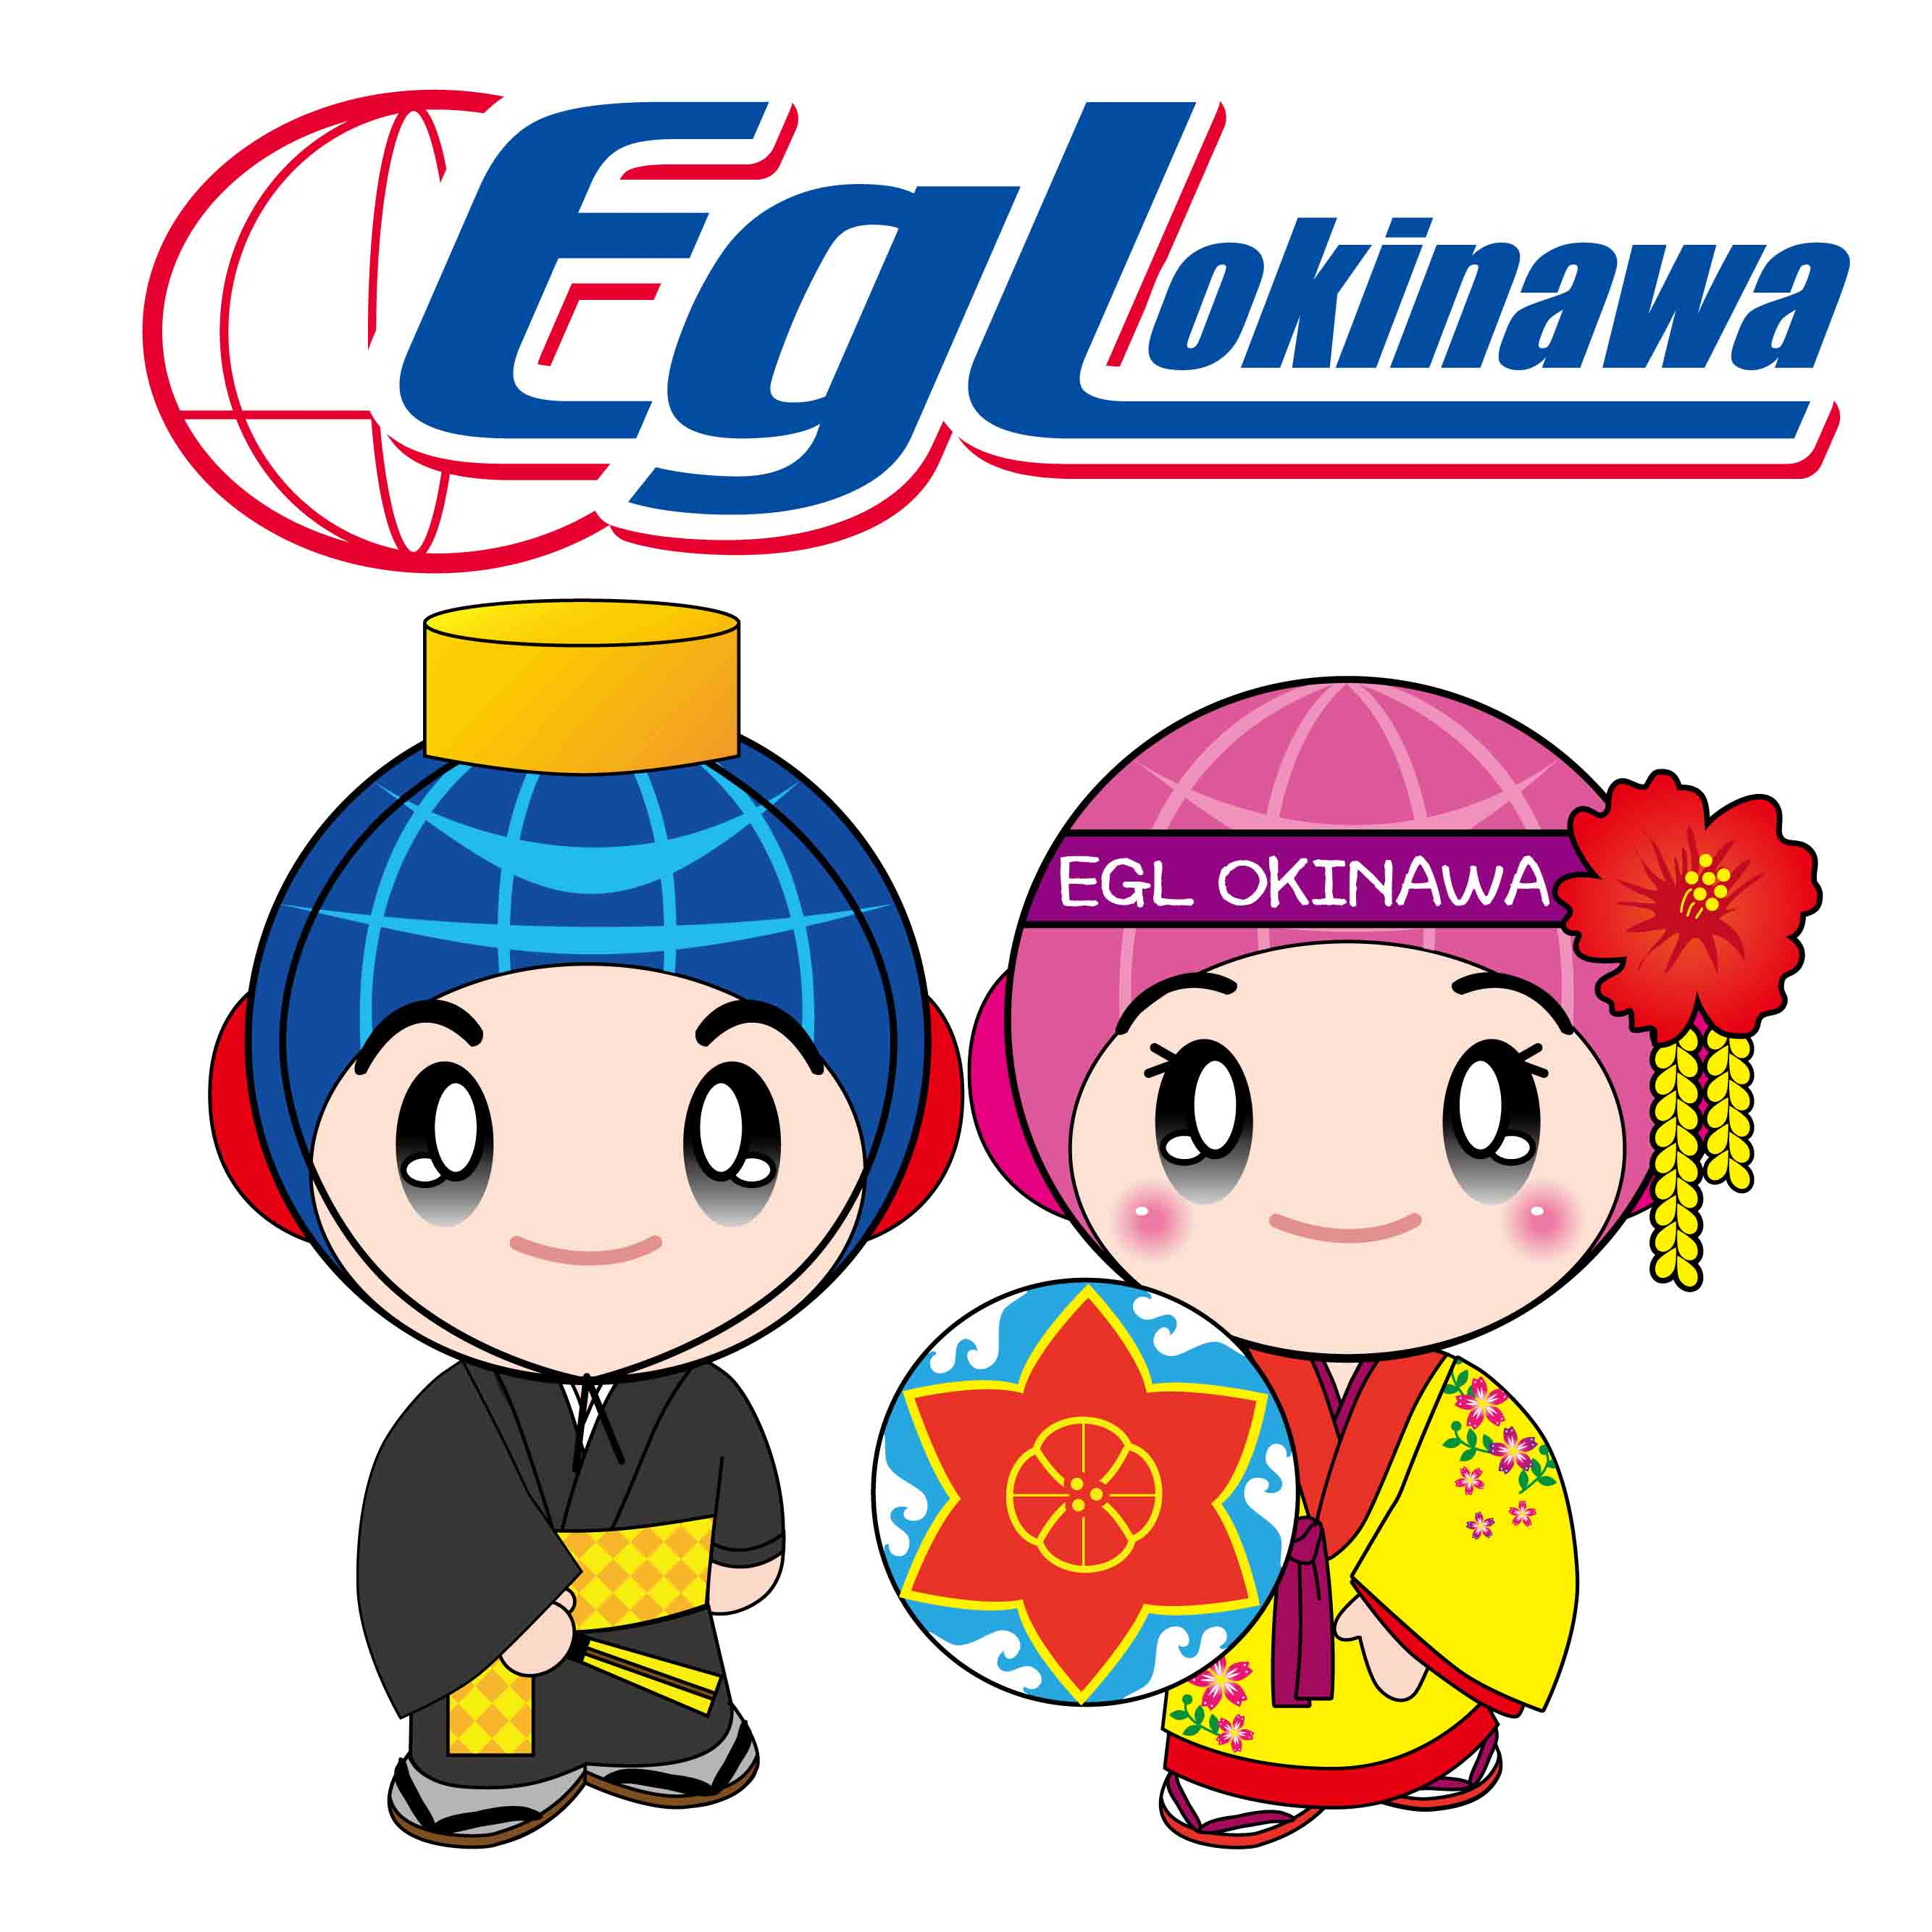 EGL OKINAWA Co., Ltd.